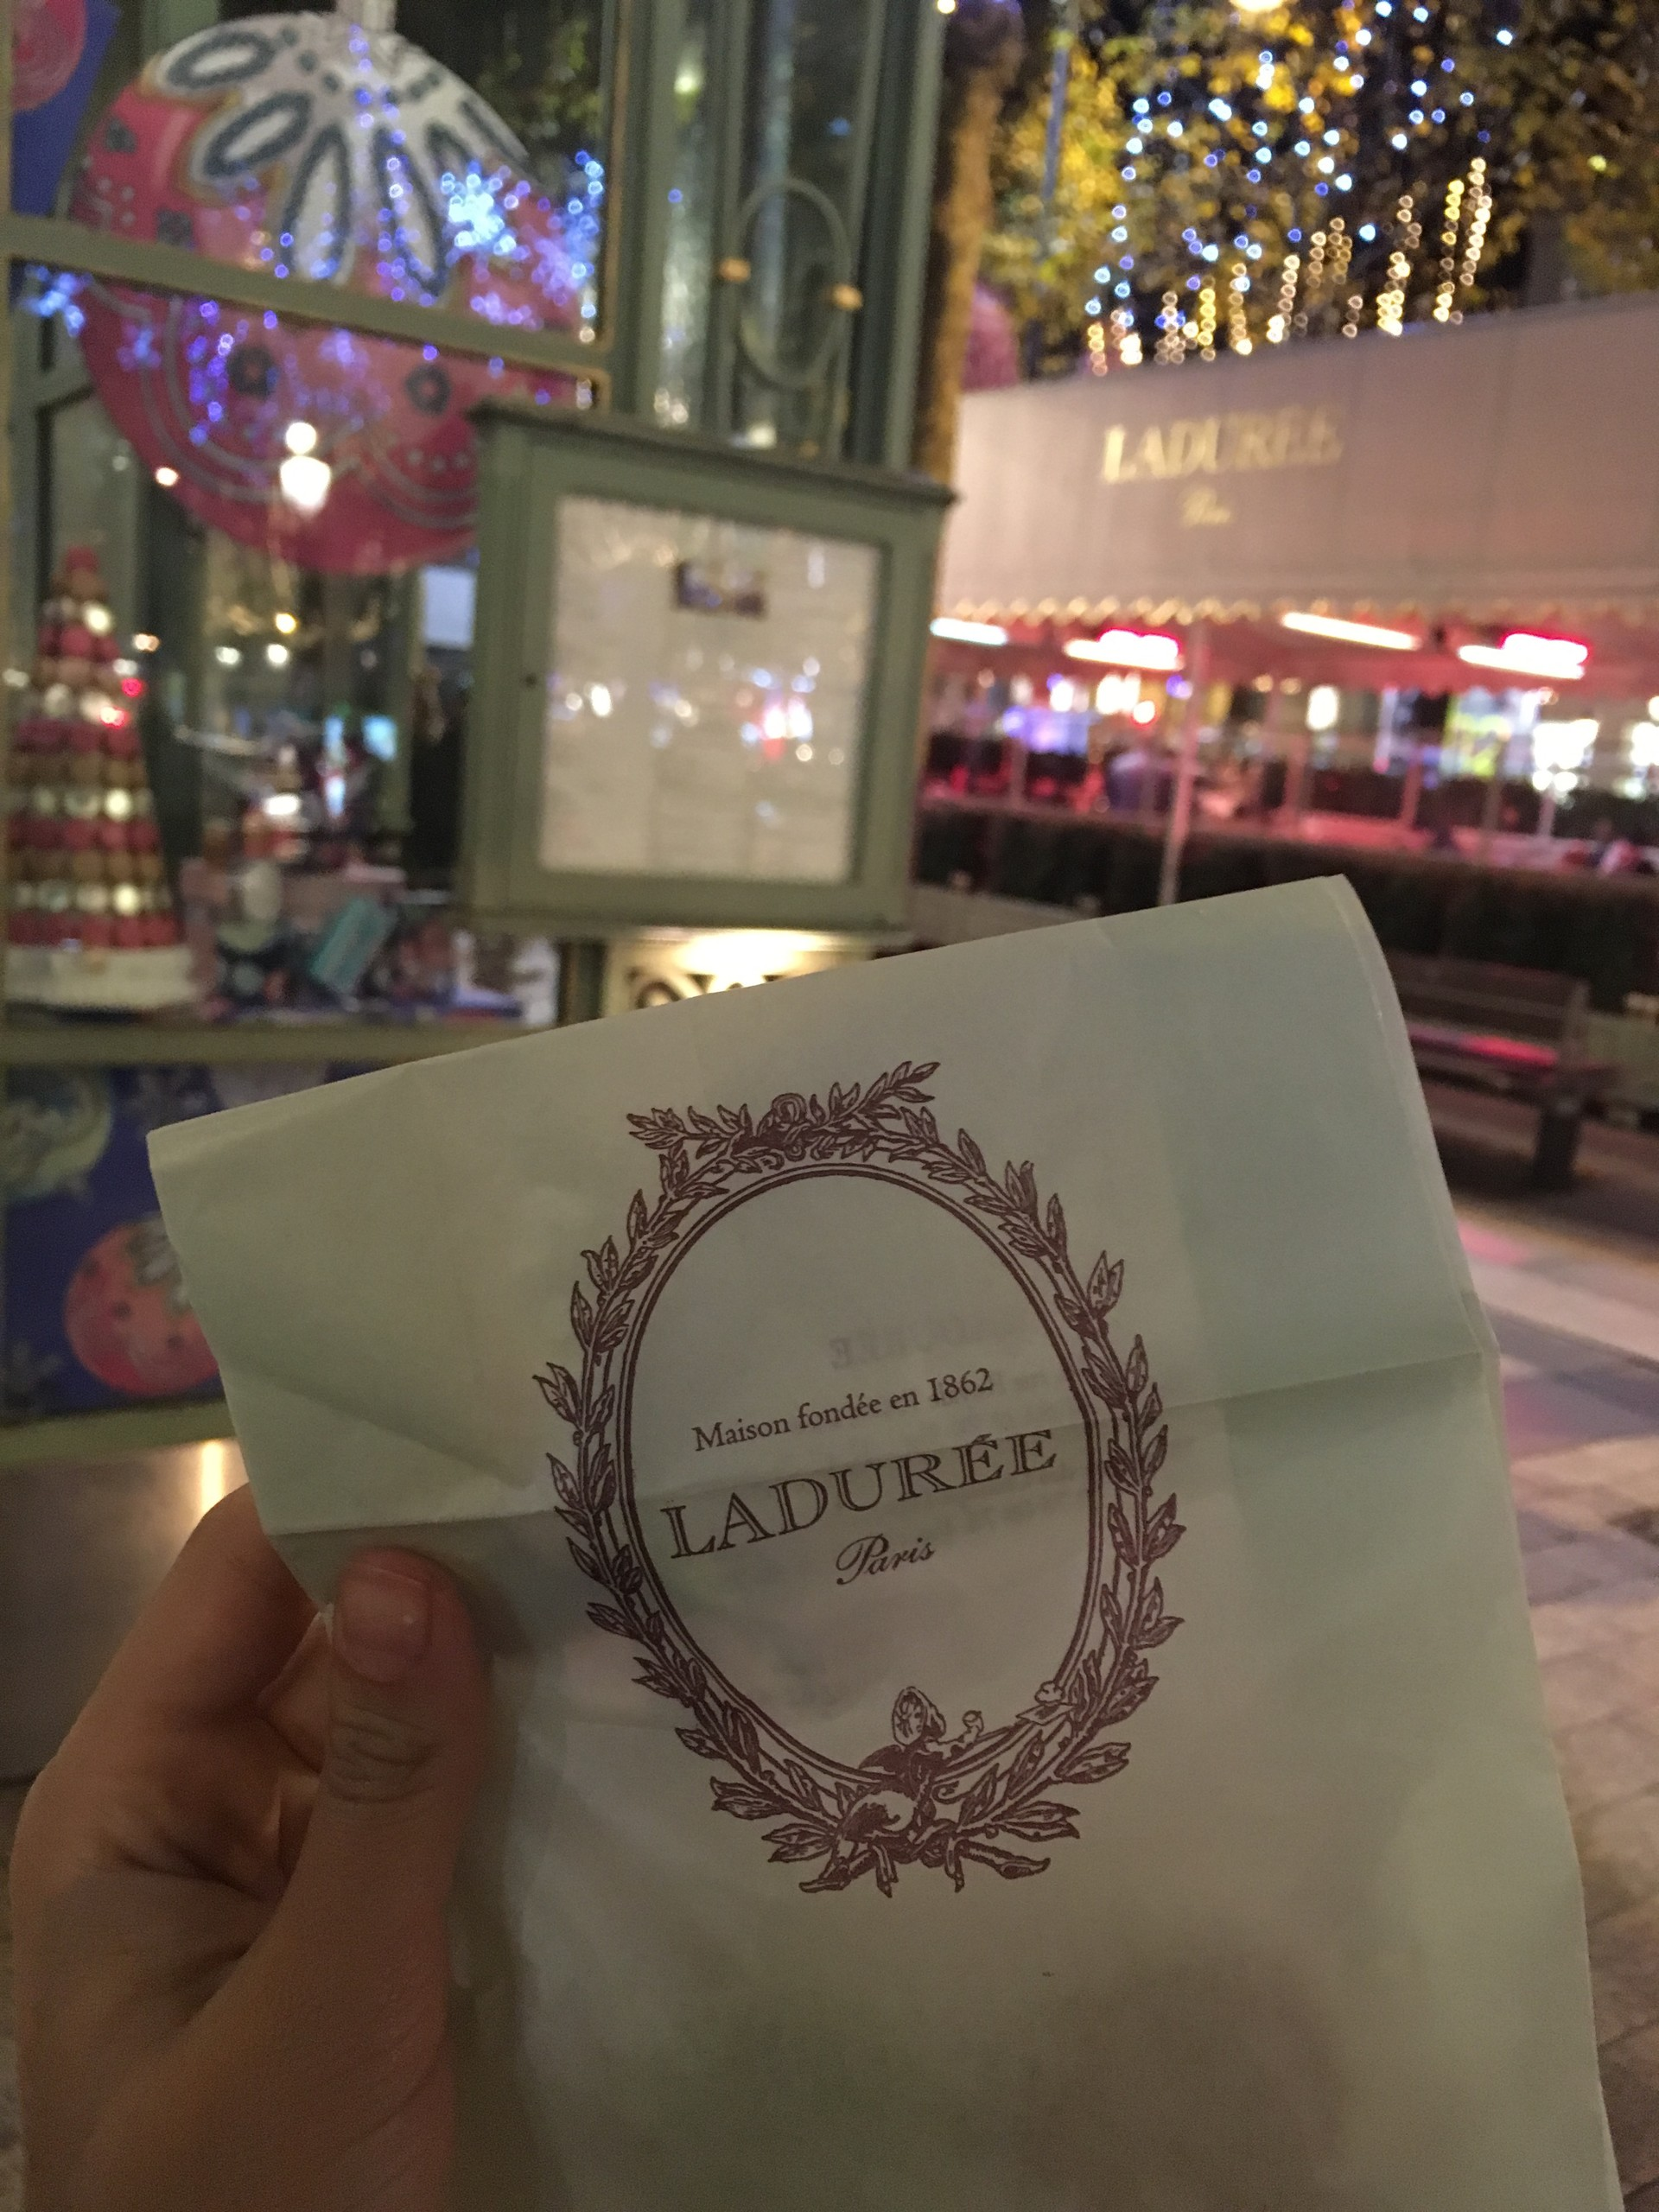 The most famous macaron